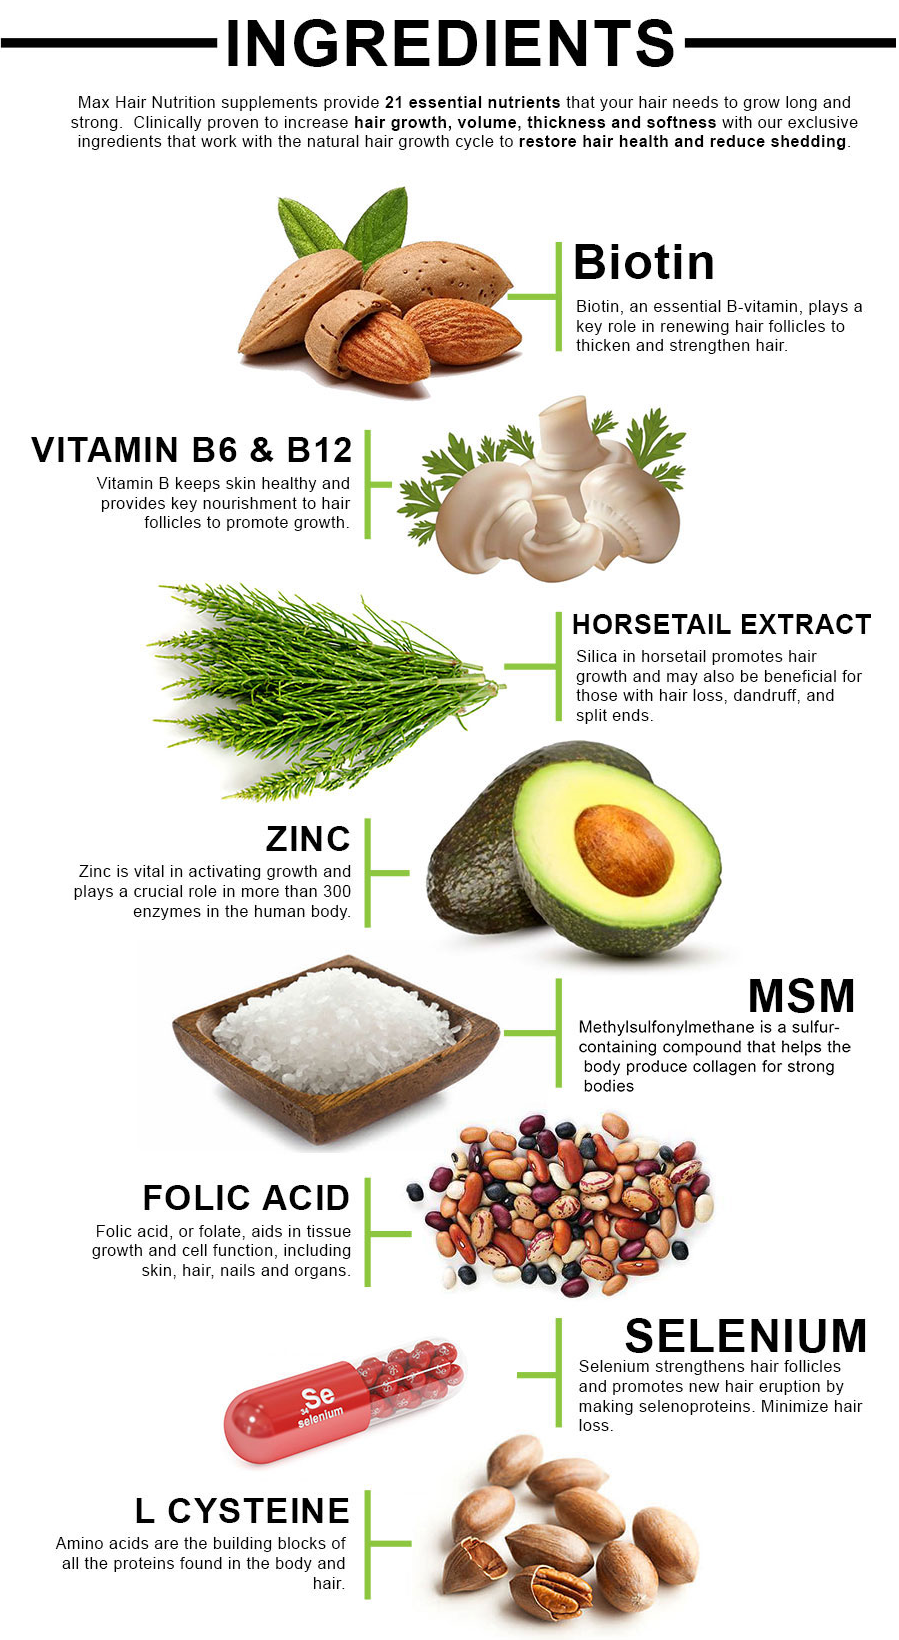 nutrifactor-max-hair-supplement.png